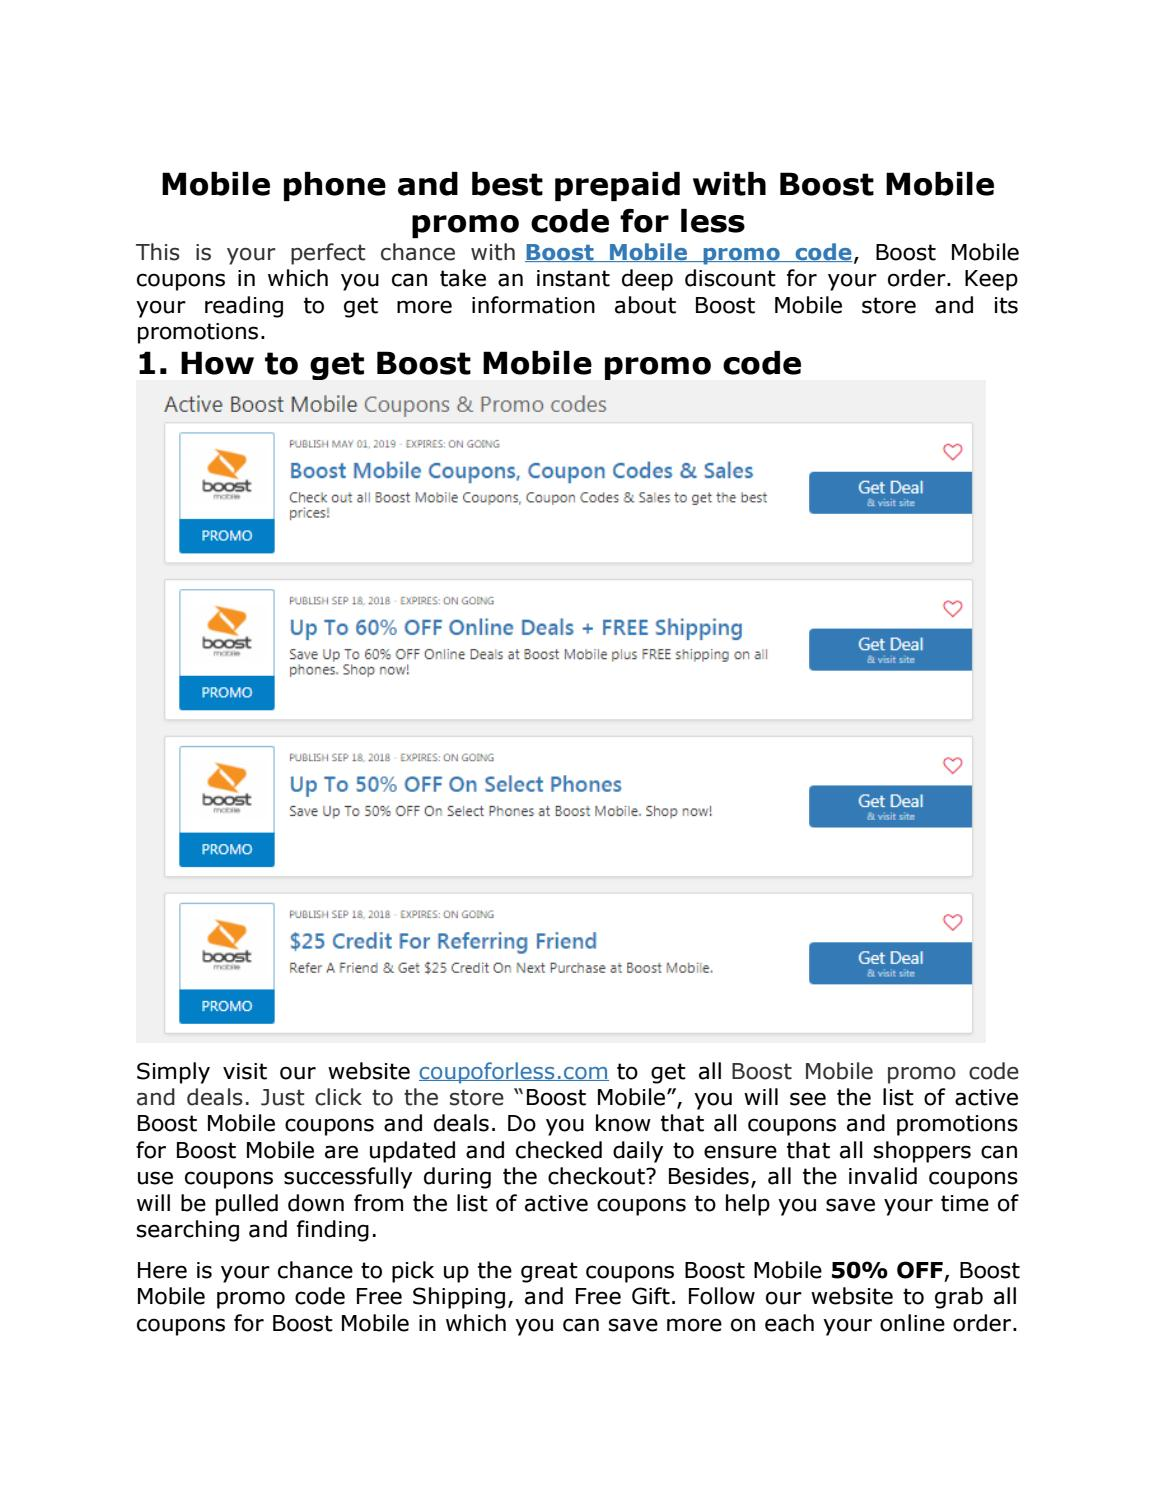 Mobile phone and best prepaid with Boost Mobile promo code